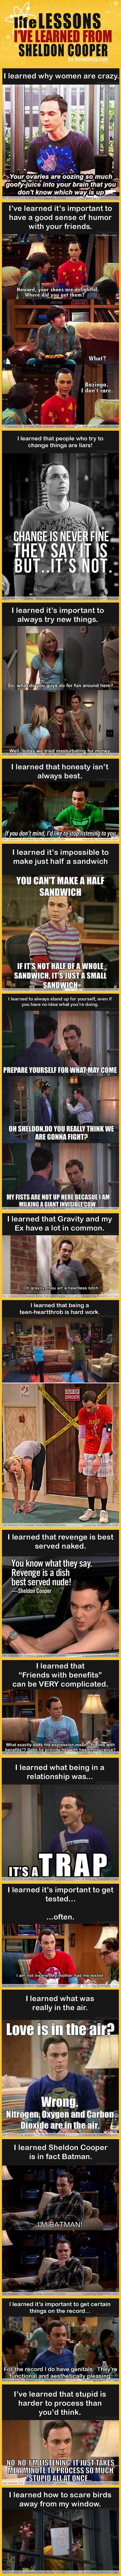 The Life Lessons I Learned From Sheldon Cooper – hahaha